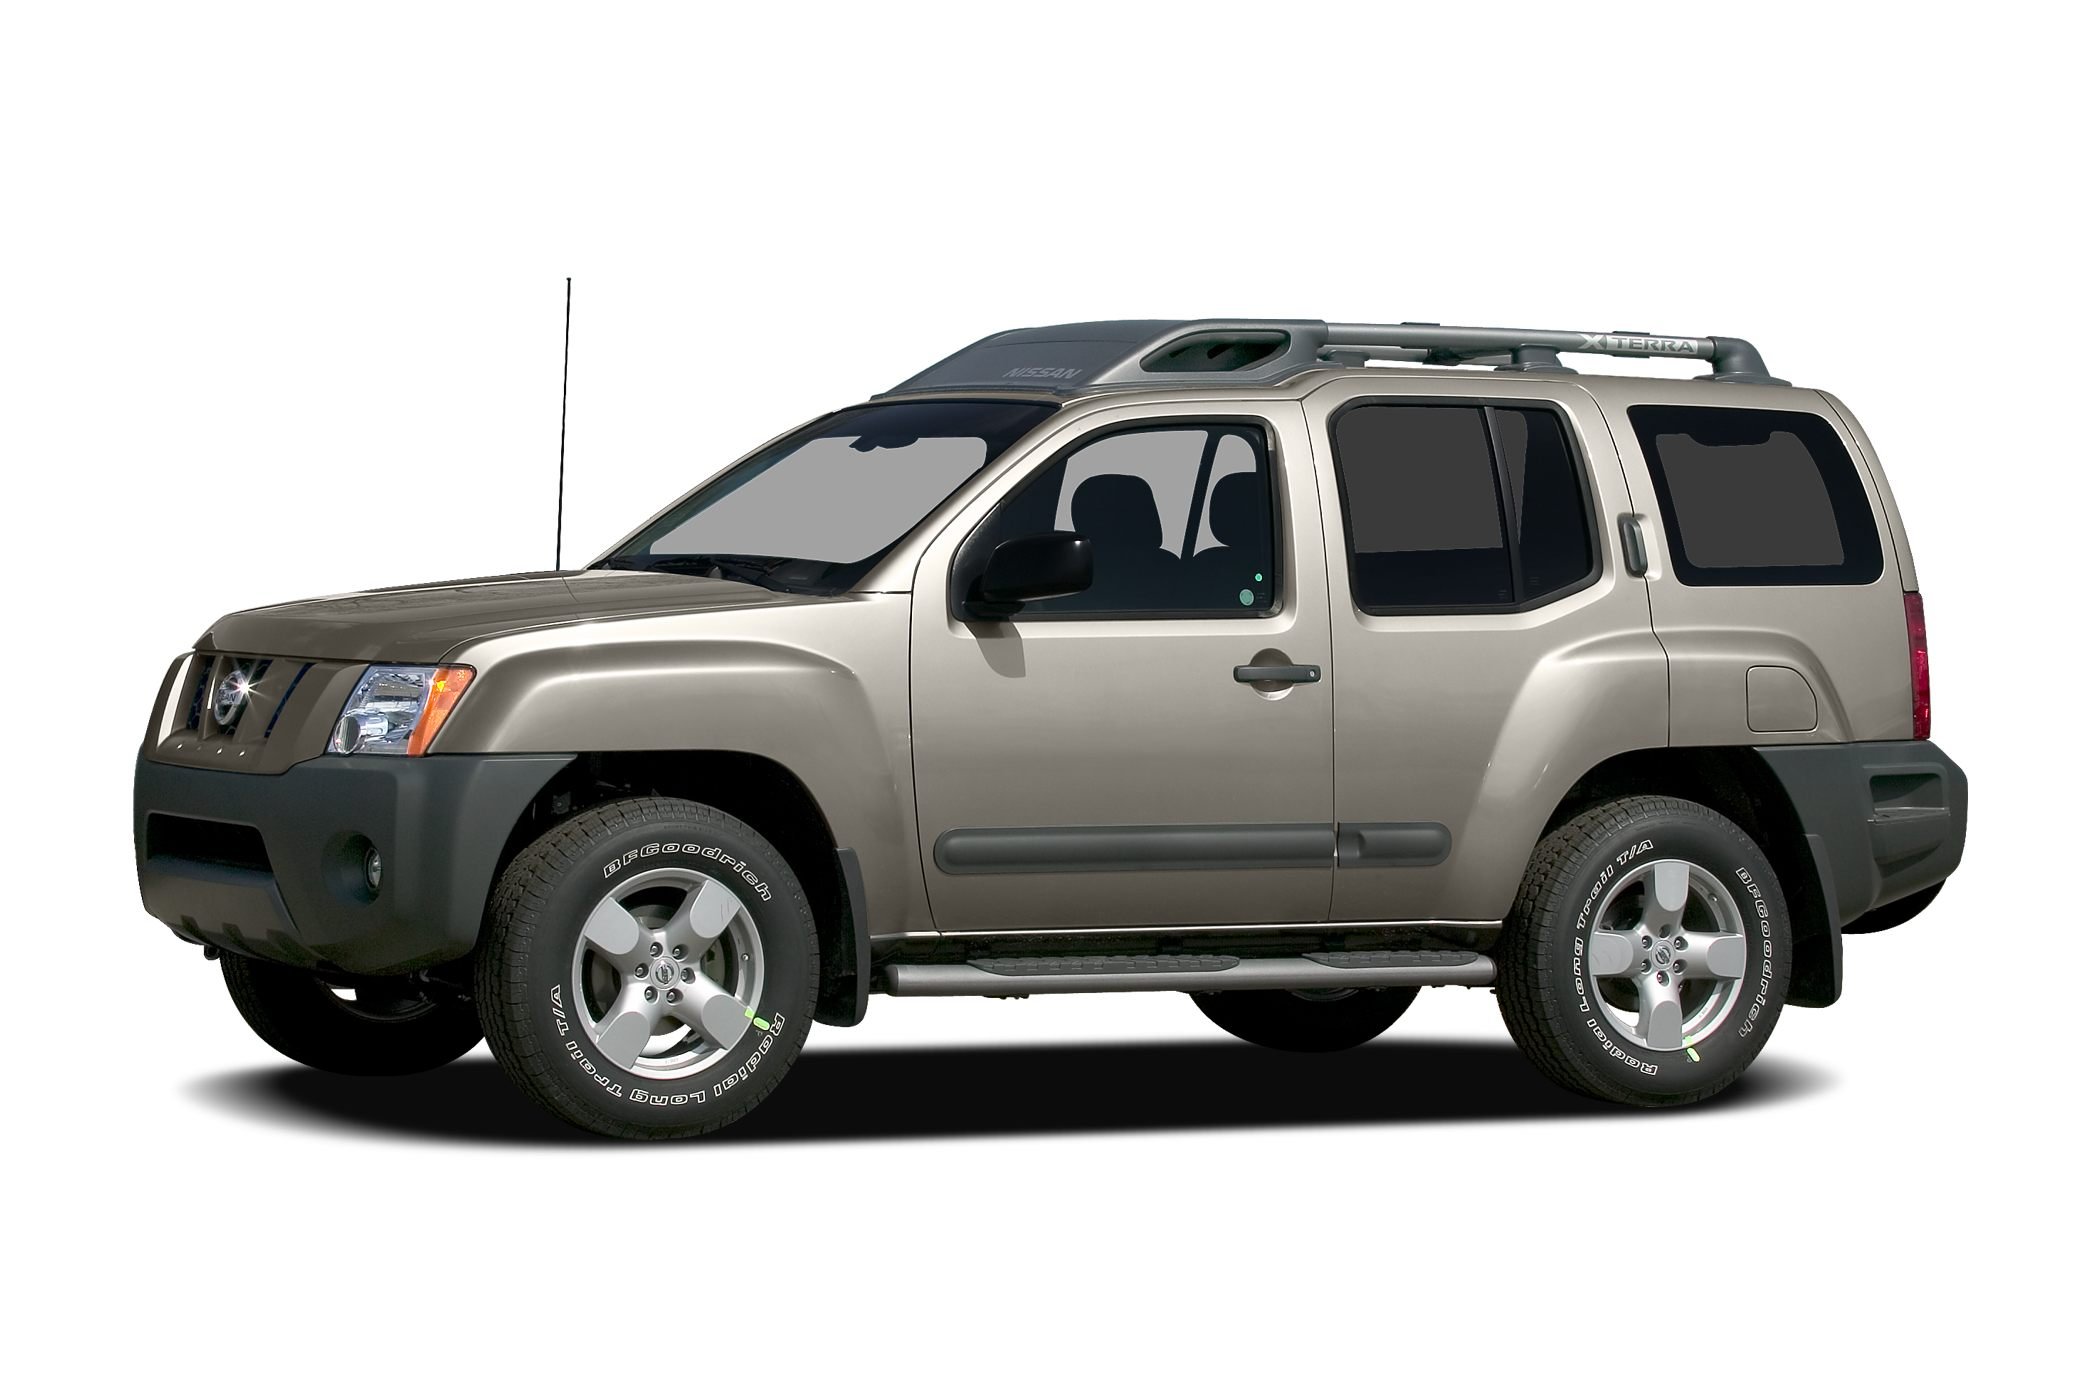 2008 Nissan Xterra S SUV for sale in Fairless Hills for $13,700 with 81,263 miles